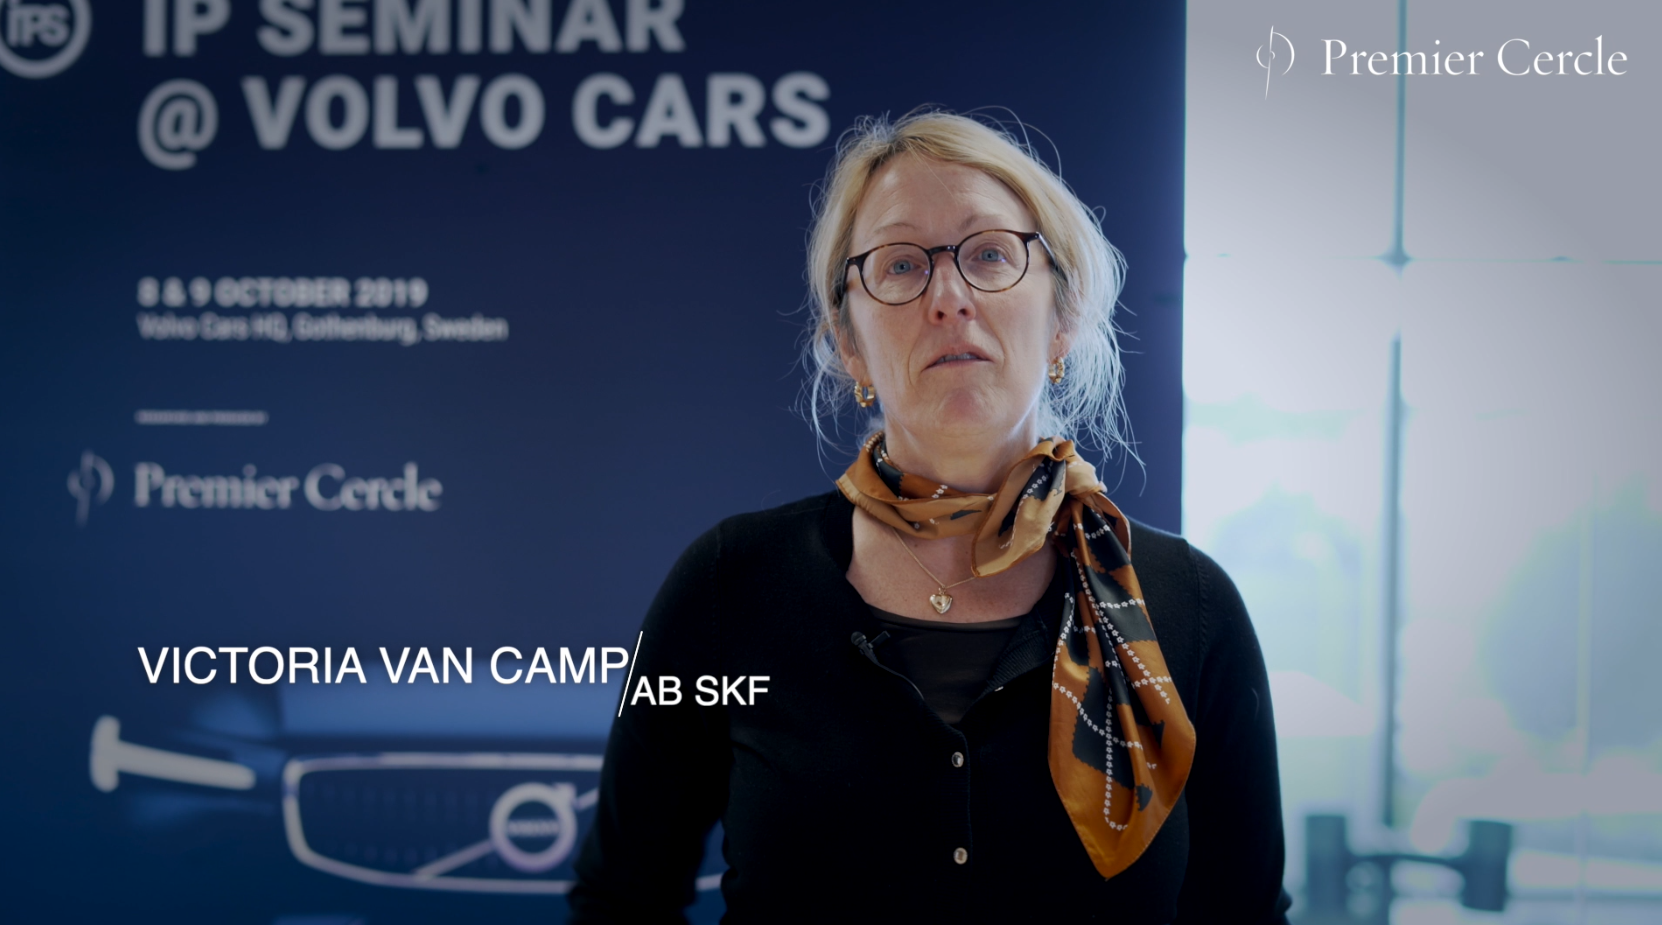 Victoria Van Camp from AB SKF interviewed by Premier Cercle